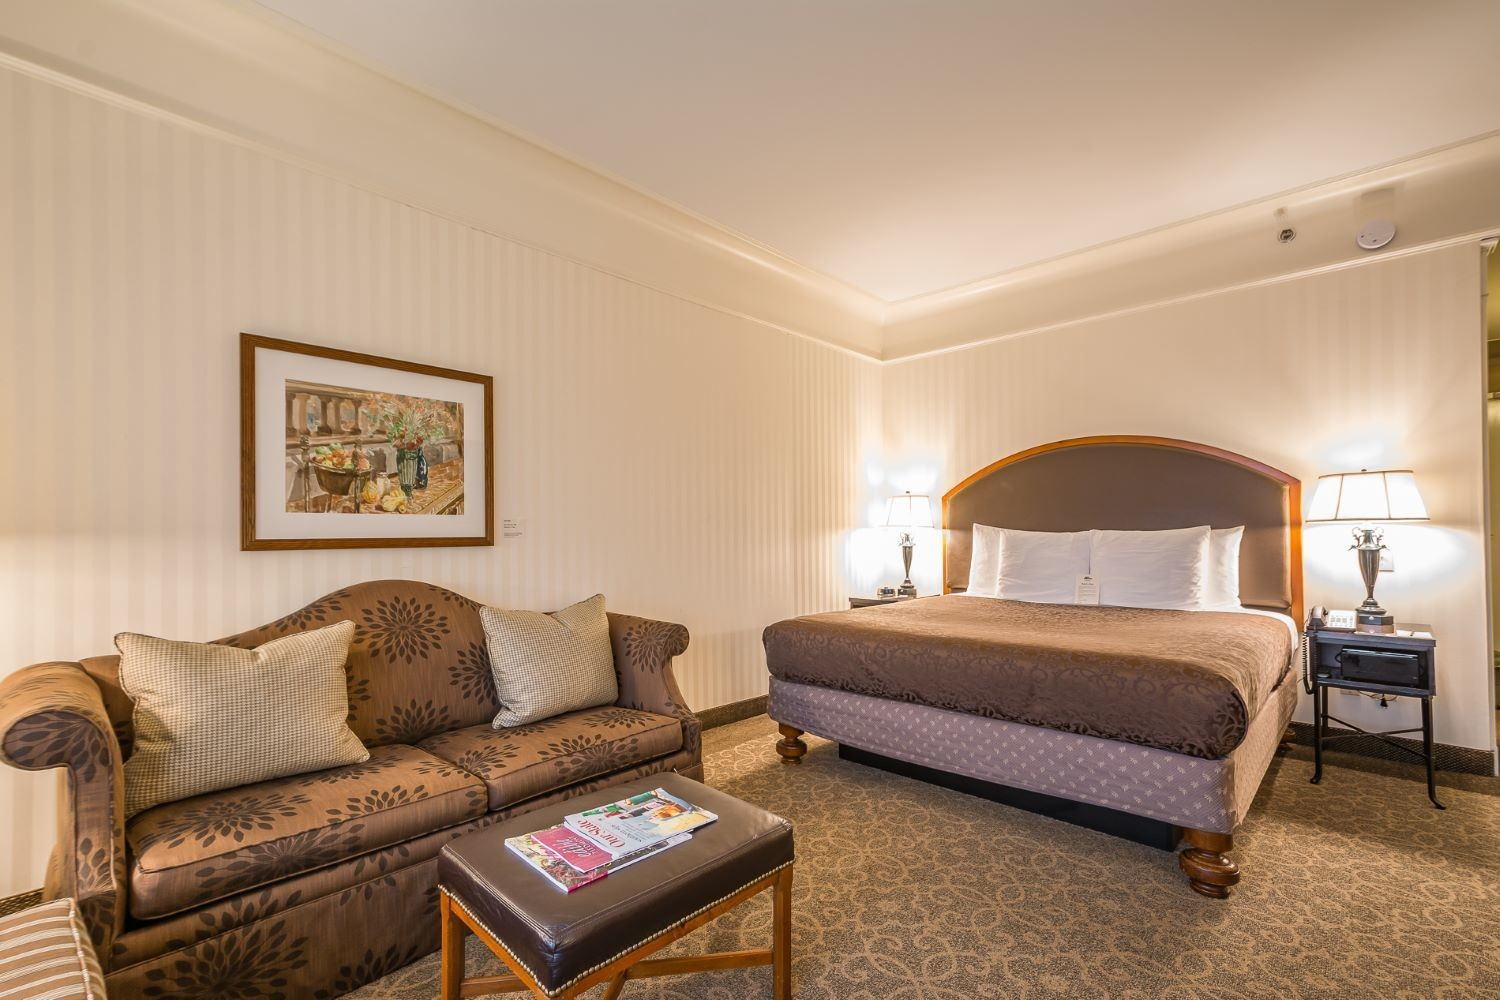 O.Henry Hotel One Night's Stay Gift Certificate - King Room & Breakfast